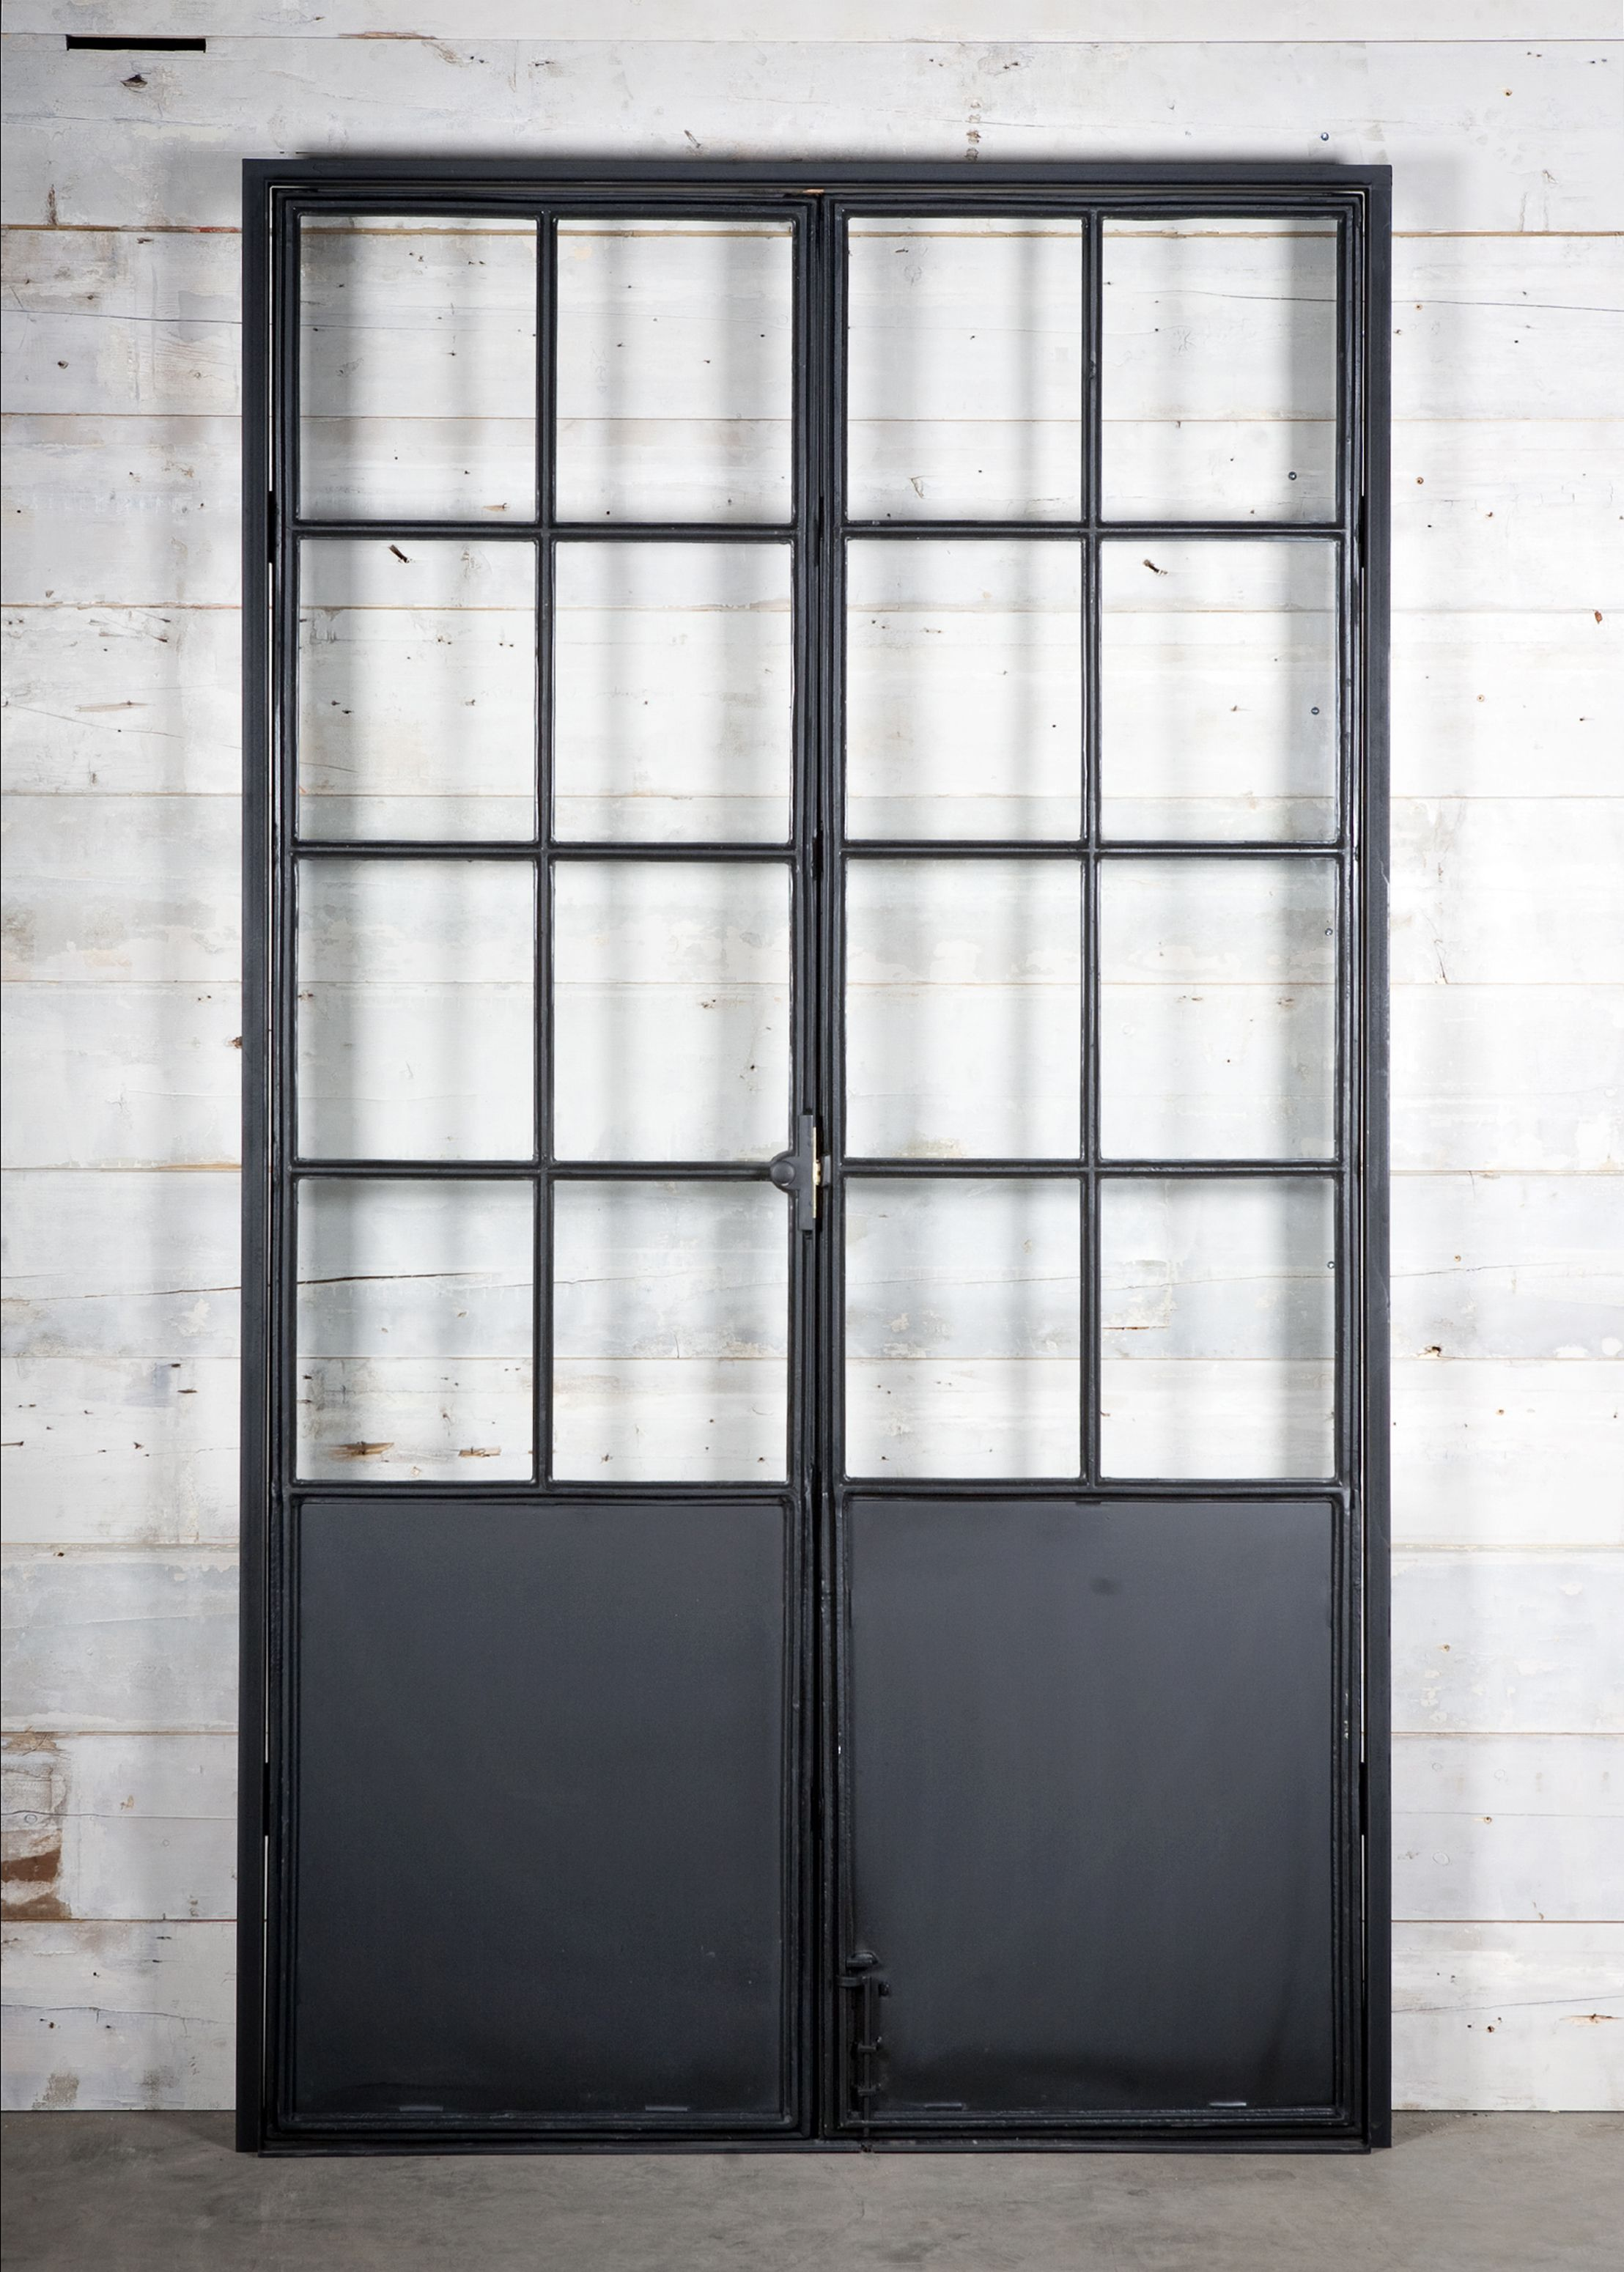 French Exterior Doors Steel: Ijzeren Deuren En Ramen Steel-frame Doors En Windows Bij